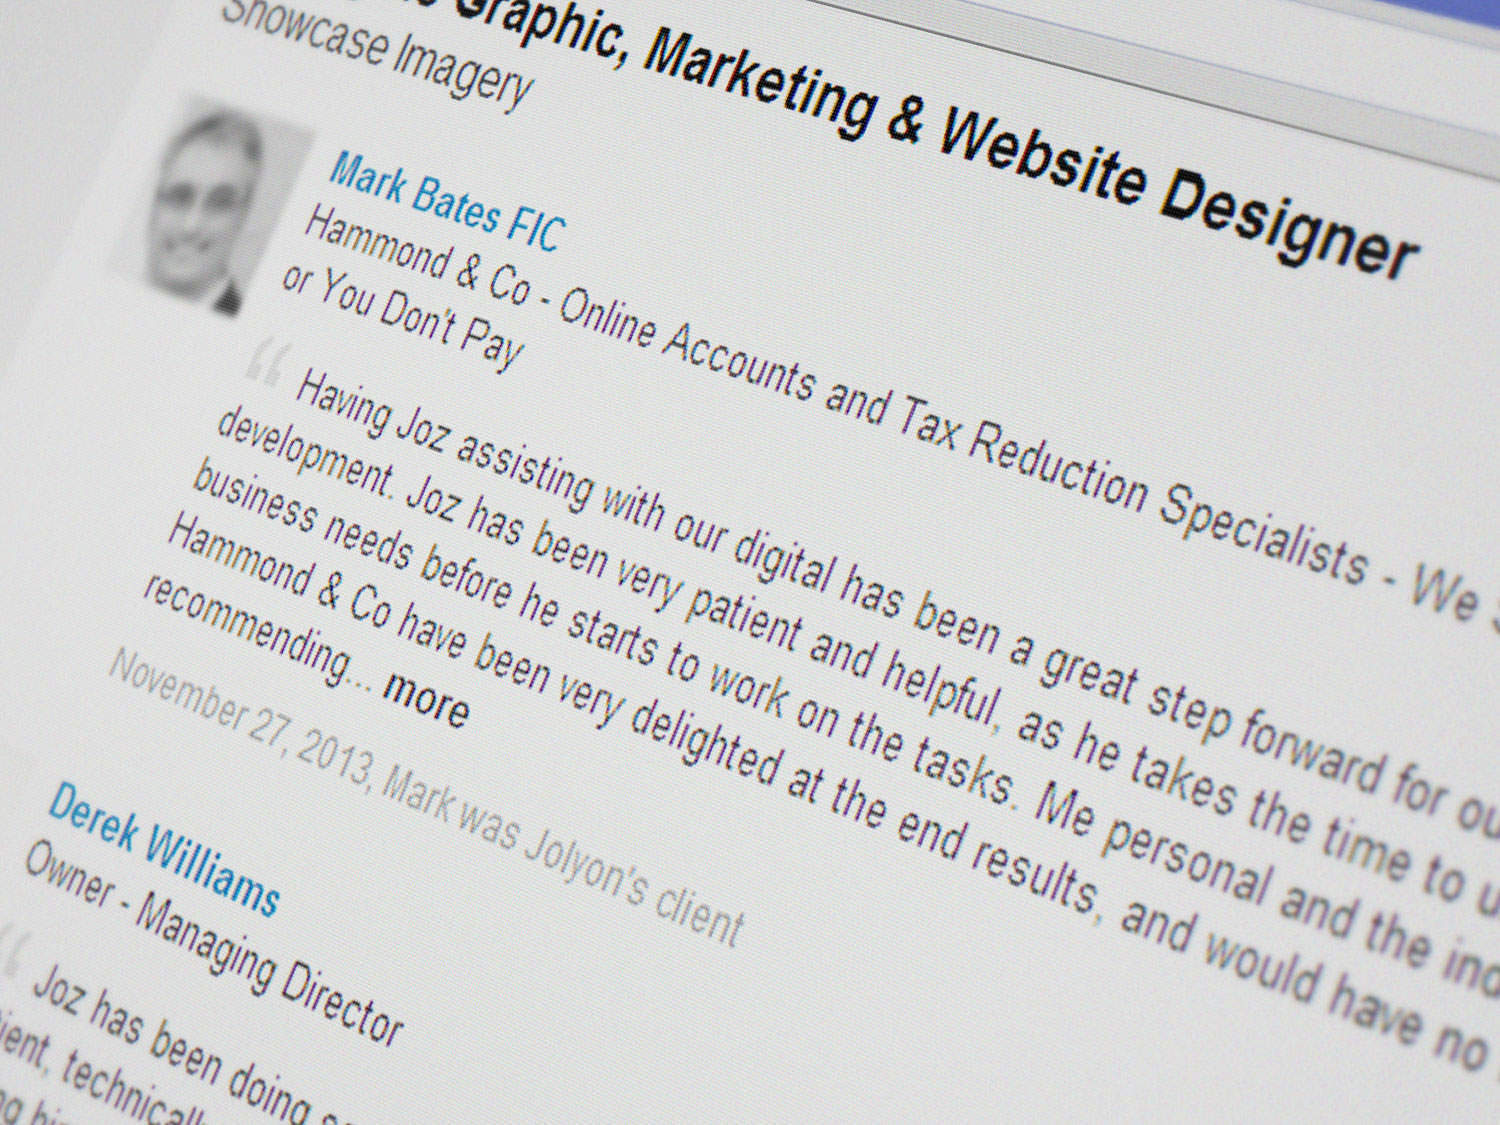 Recommendations article for LinkedIn